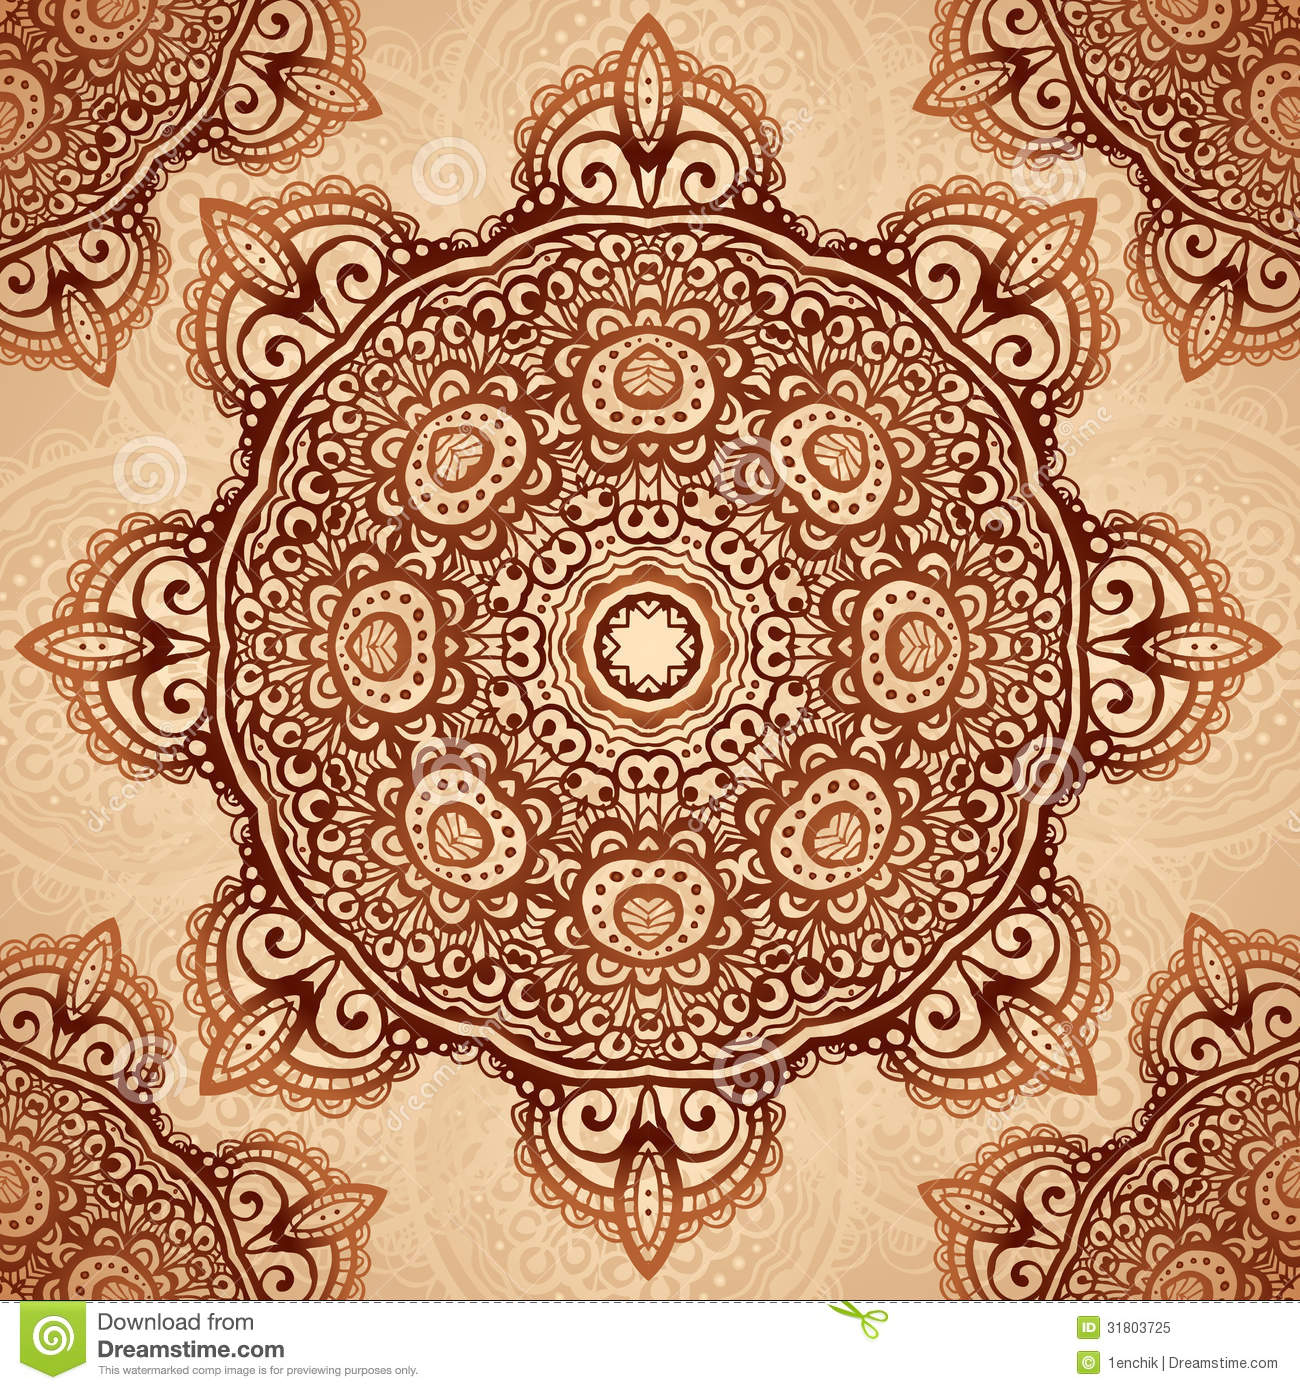 Ornate vintage vector background in mehndi style royalty free stock - Royalty Free Stock Photo Background Indian Mehndi Napkin Ornate Style Vintage